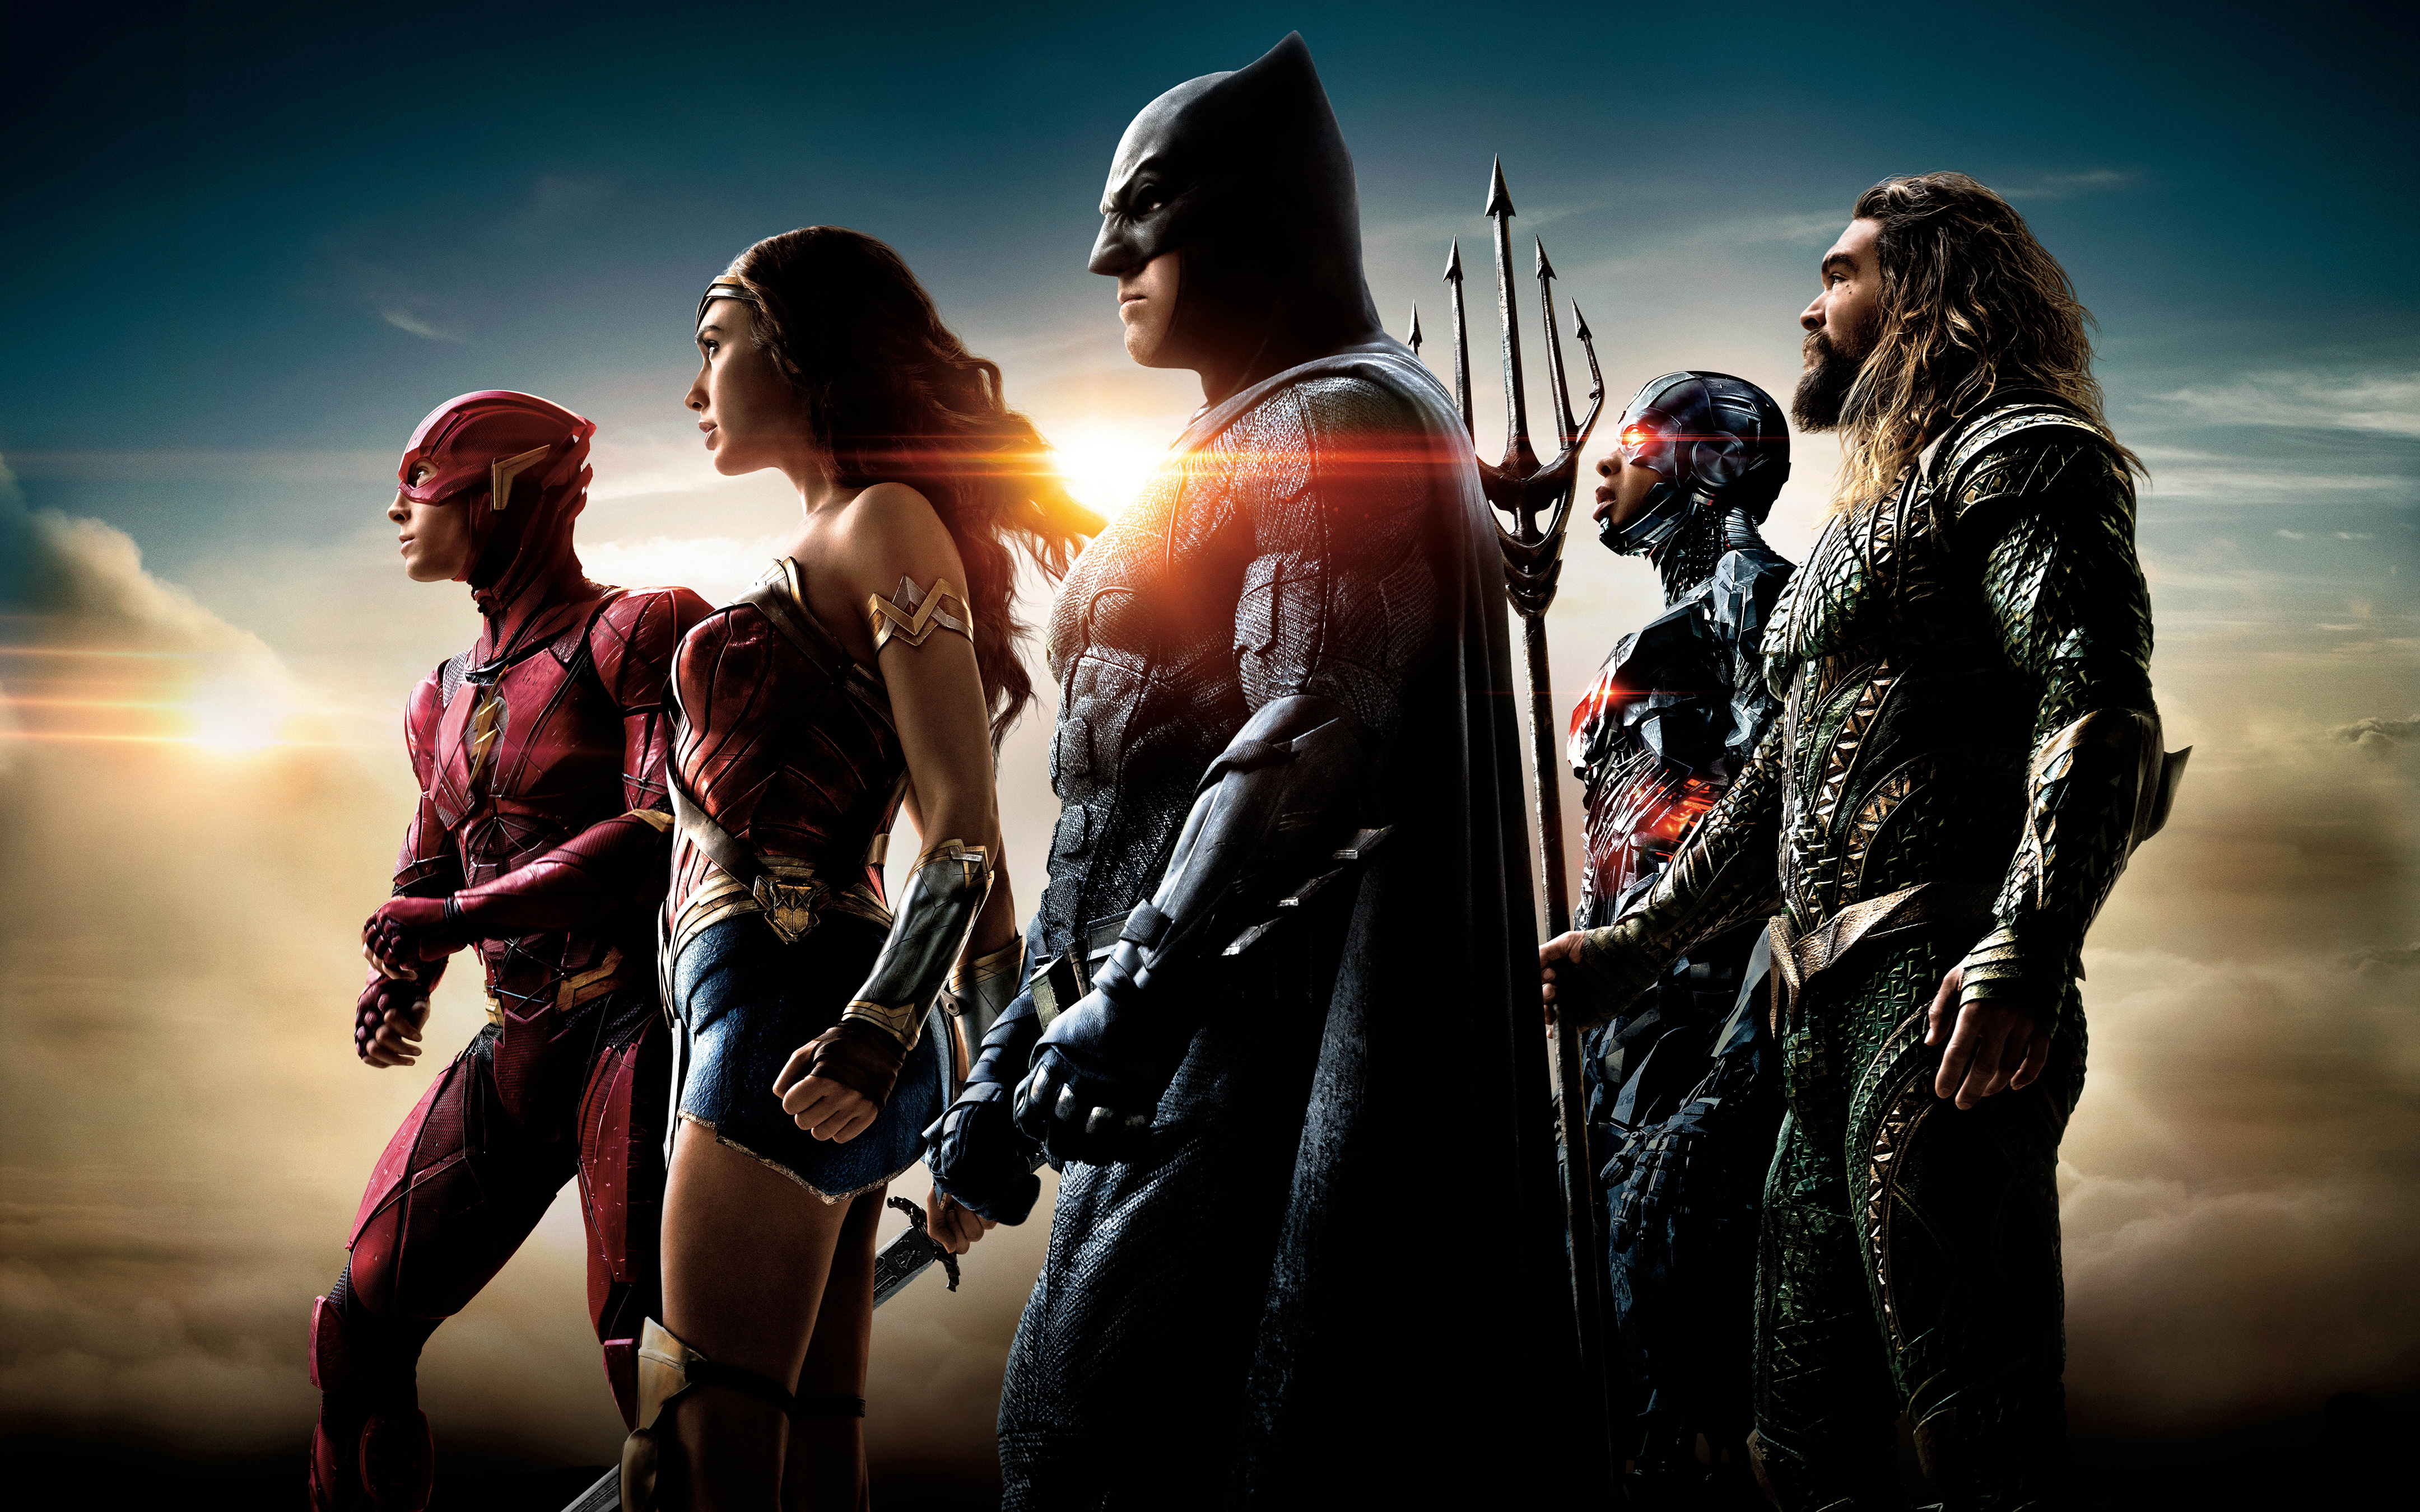 Justice League Movie Hd Movies 4k Wallpapers Images: Justice League Unite The League 4k, HD Movies, 4k